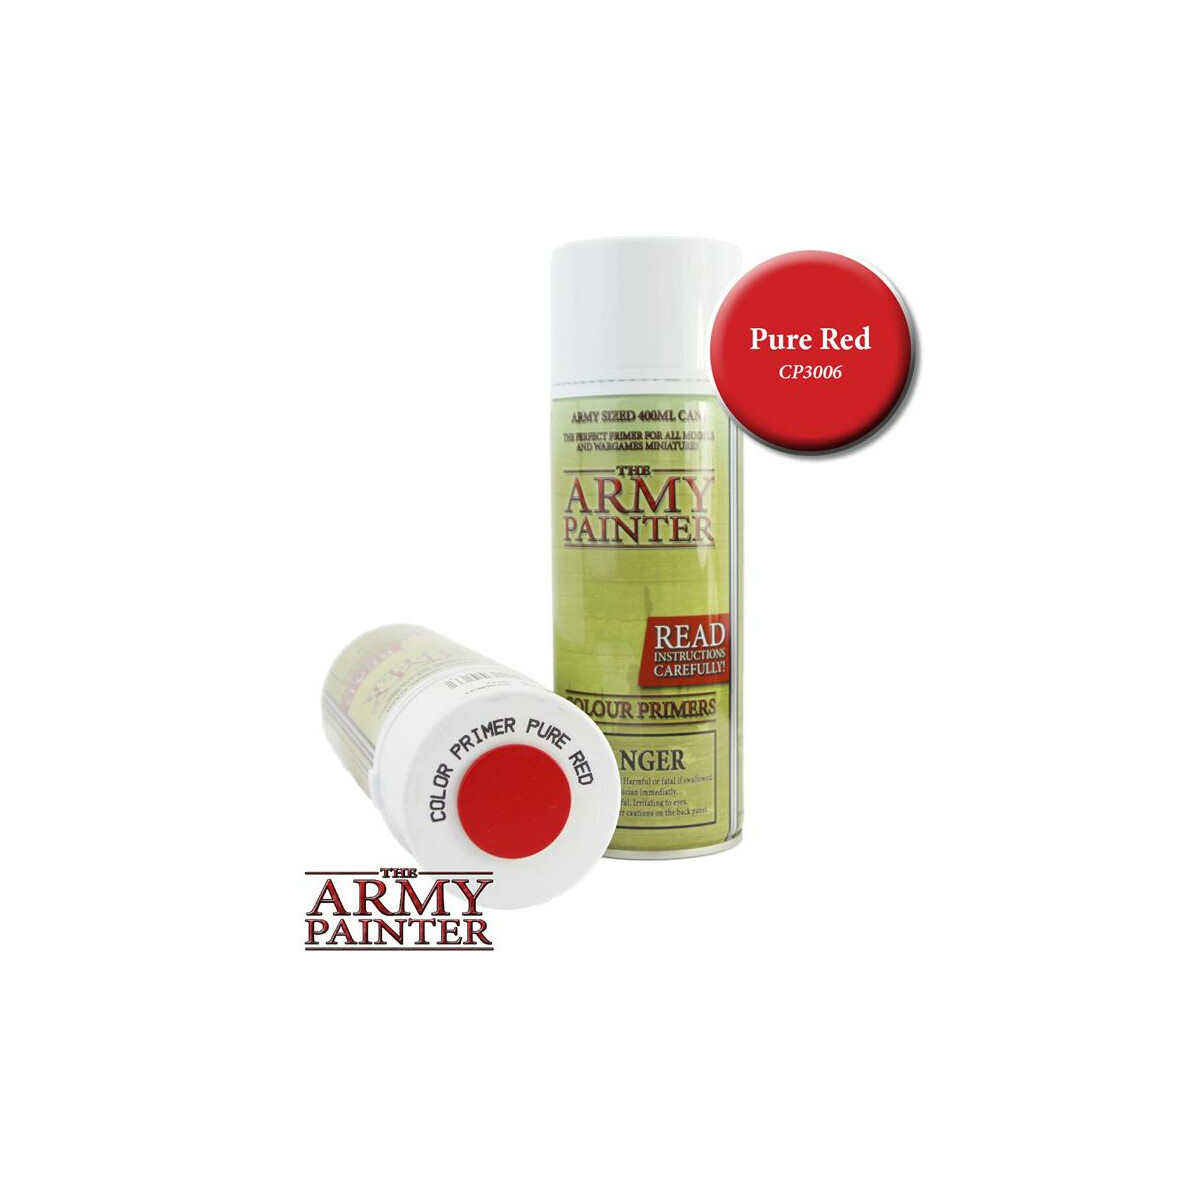 Army Painter Pure Red Primer